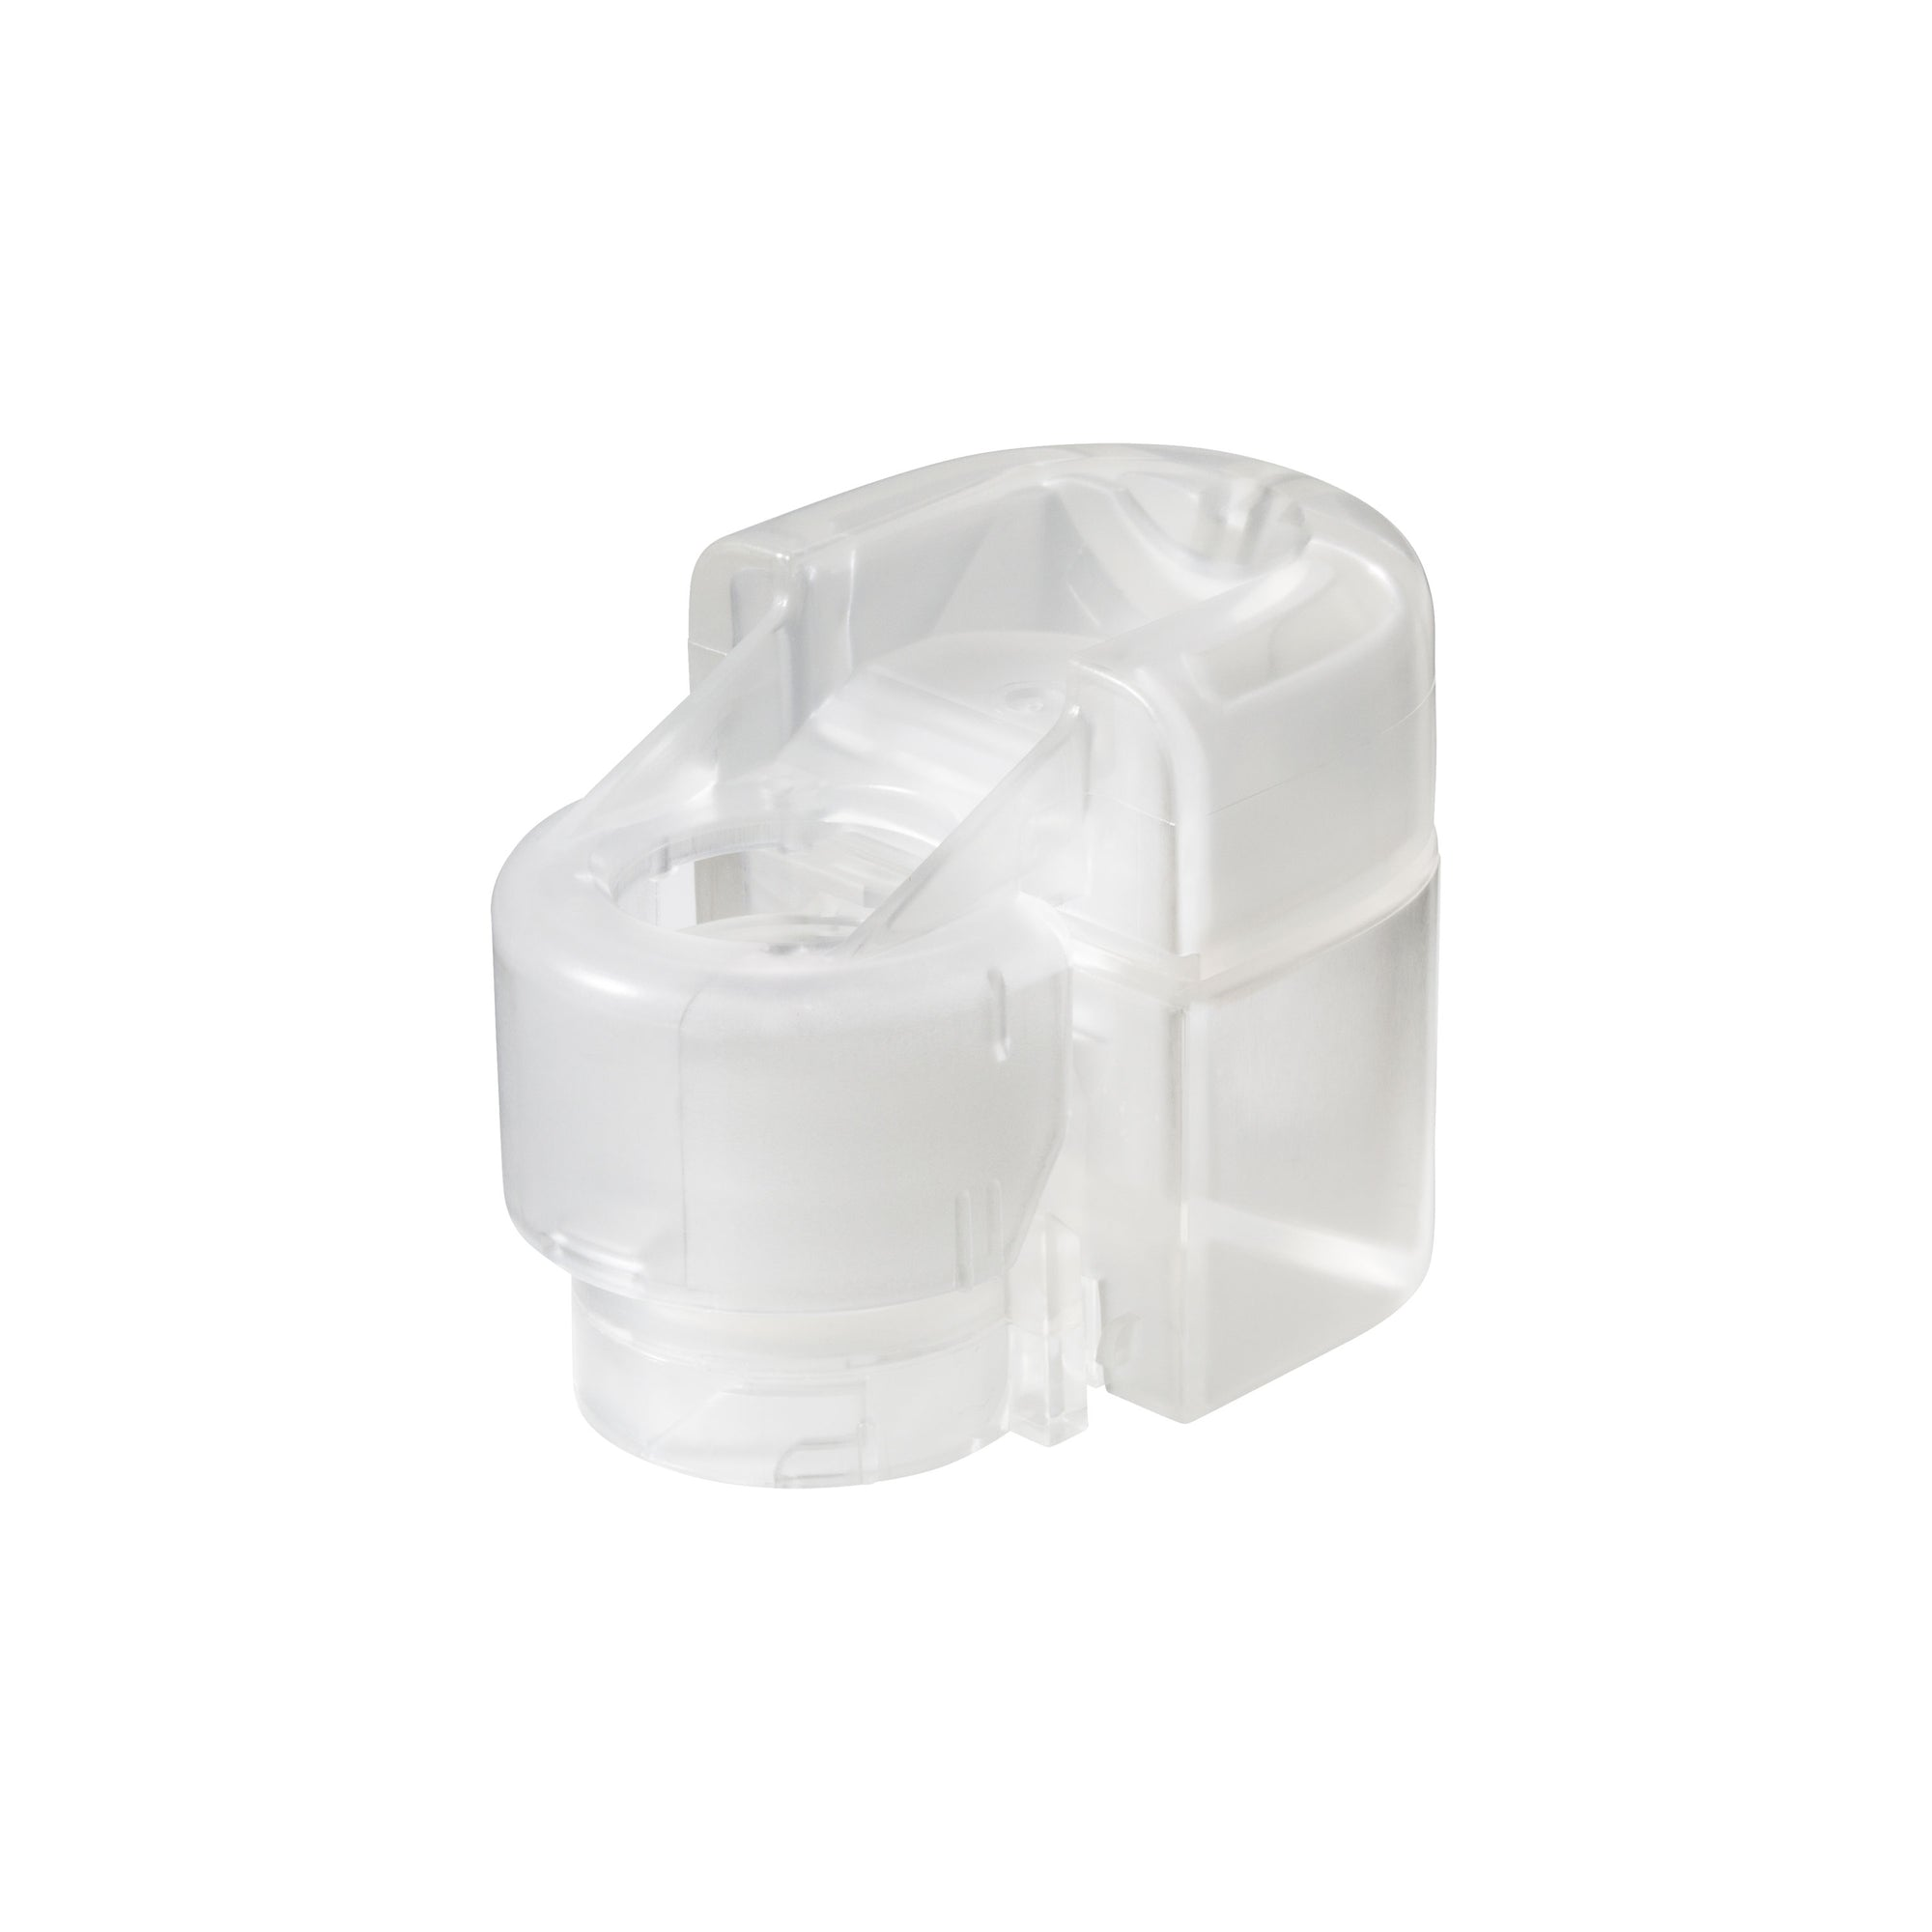 Omron U100 Medication Container